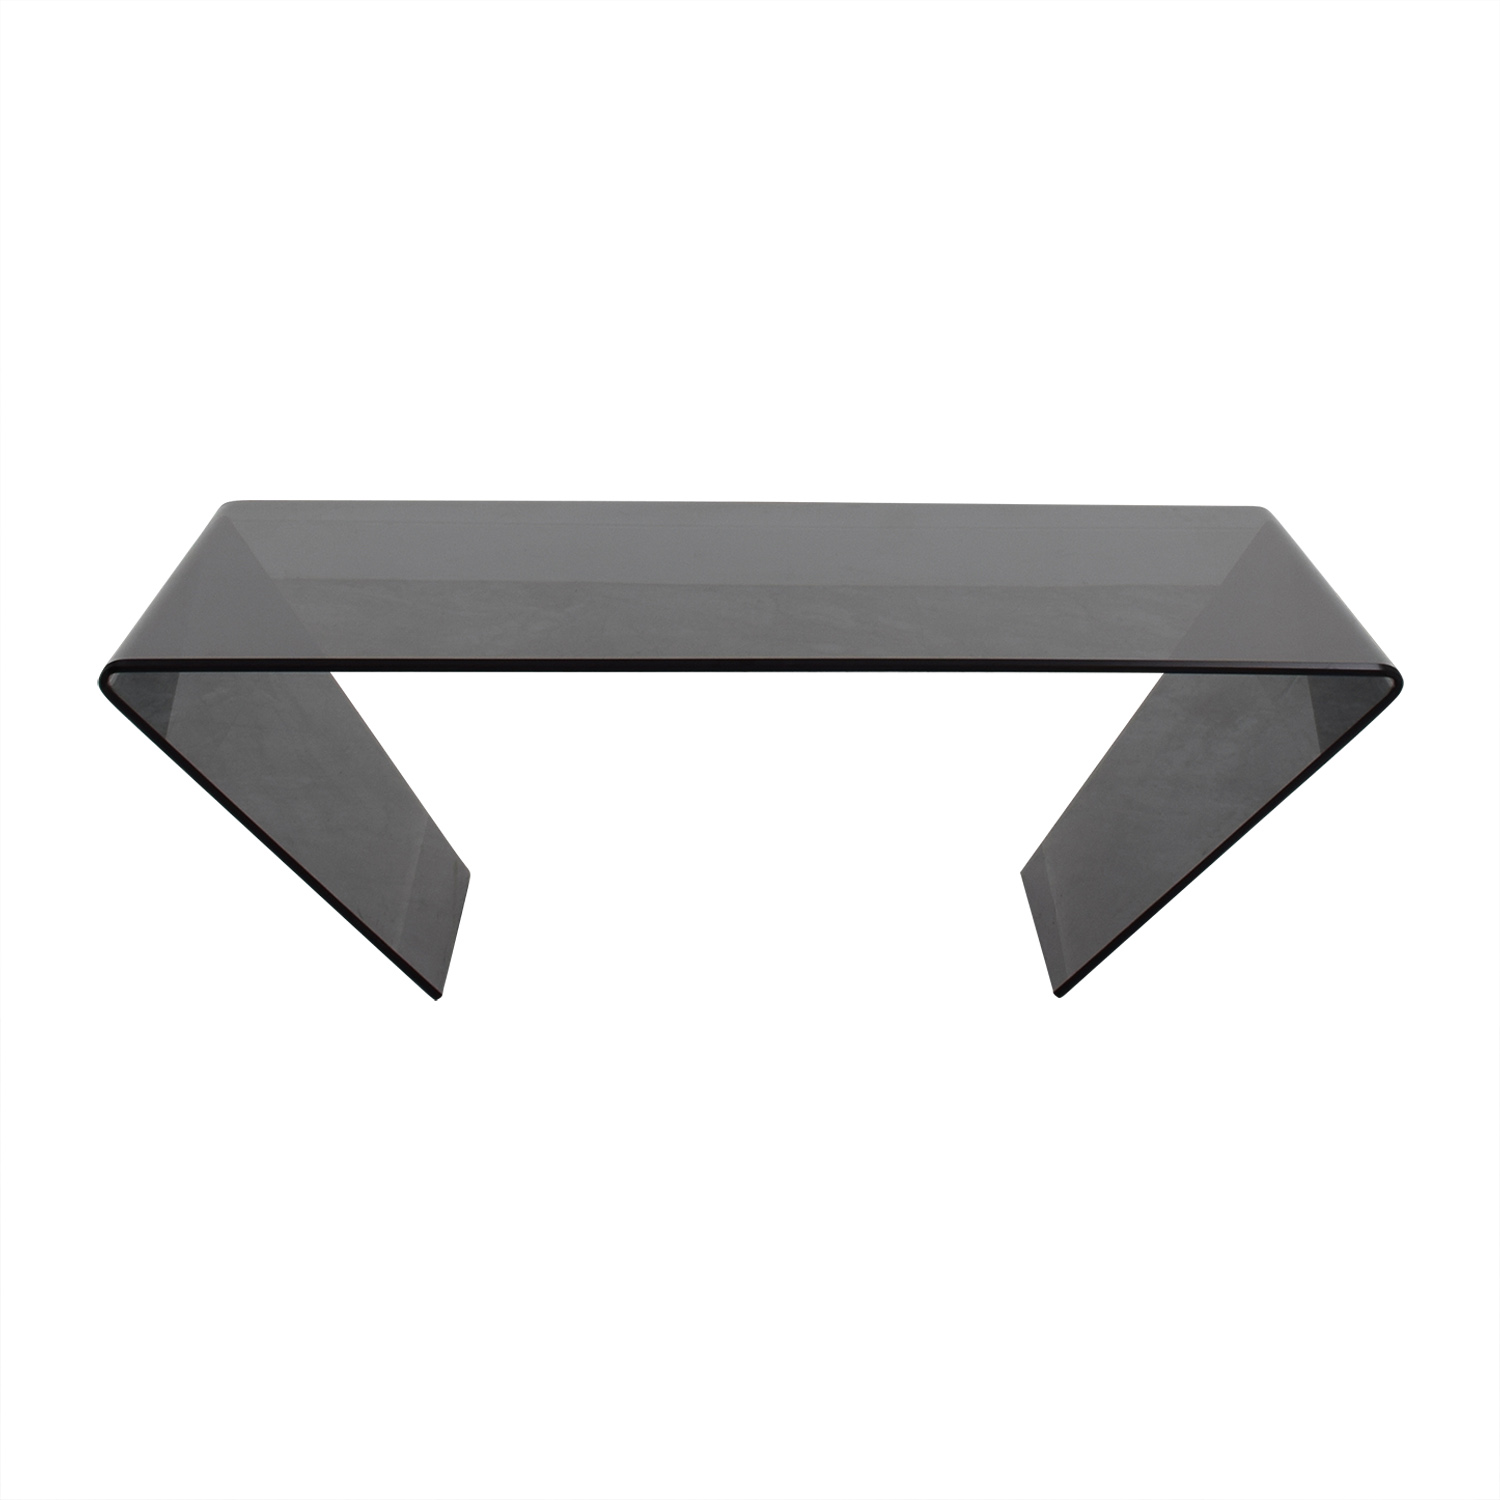 J & M Furniture J & M Furniture Bent Black Glass Coffee Table